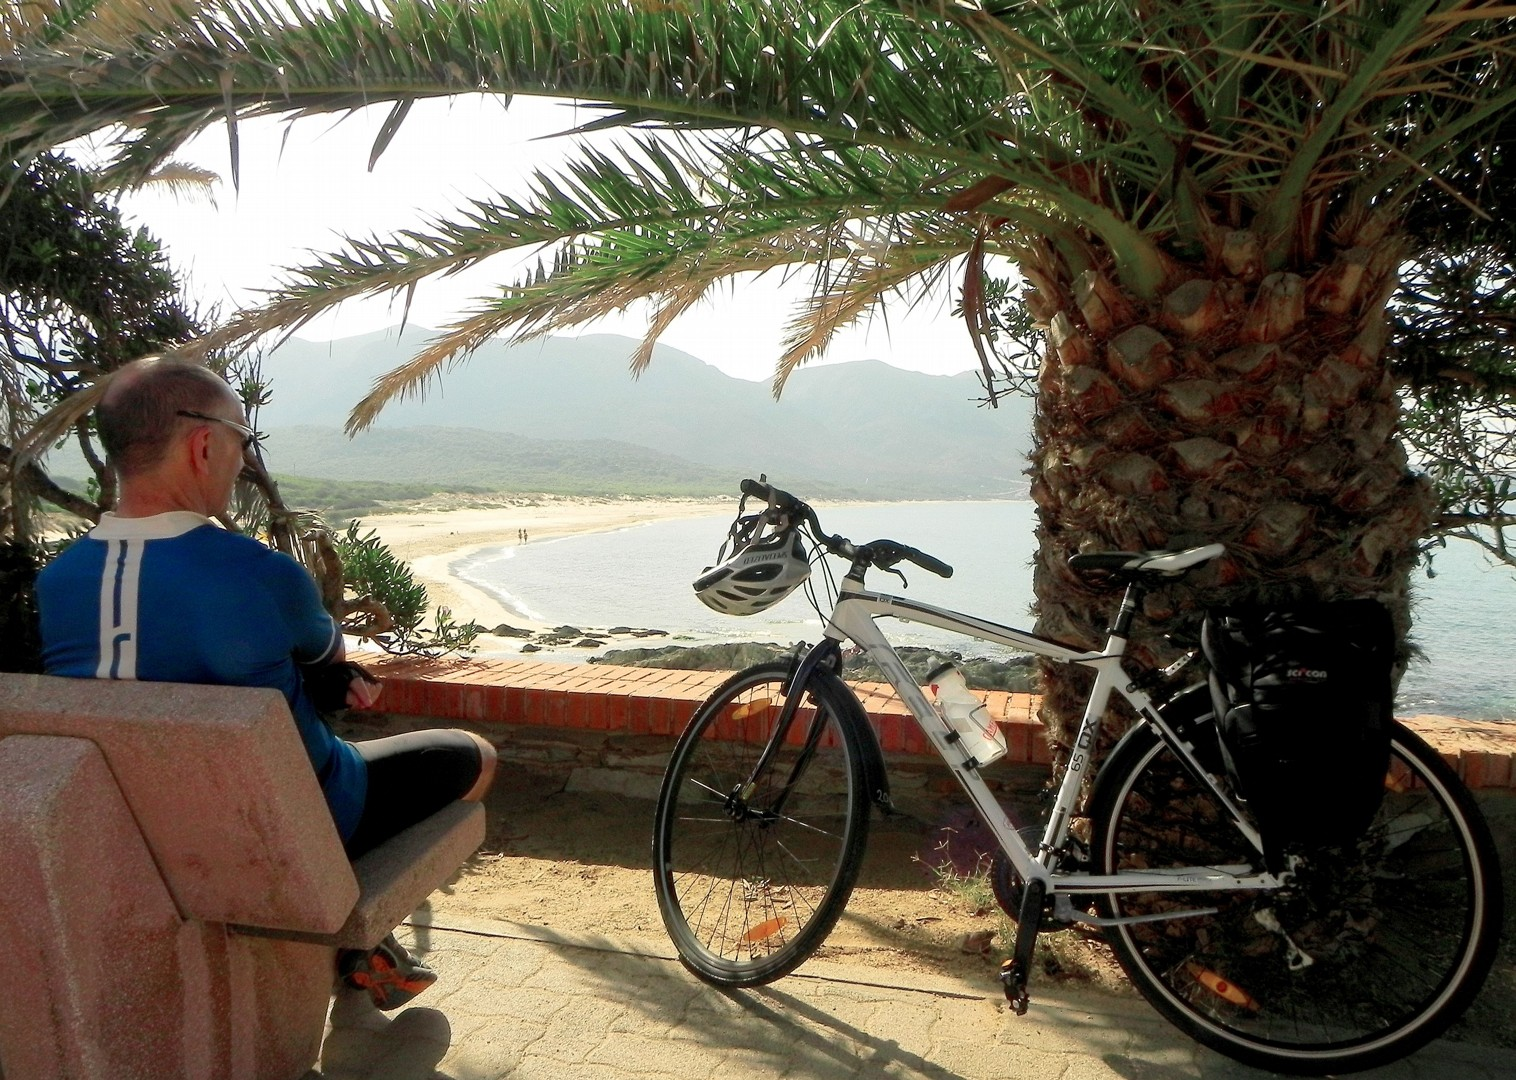 sea-views-island-cycling-tour-sardinia.jpg - Italy - Sardinia - Island Flavours - Guided Leisure Cycling Holiday - Leisure Cycling